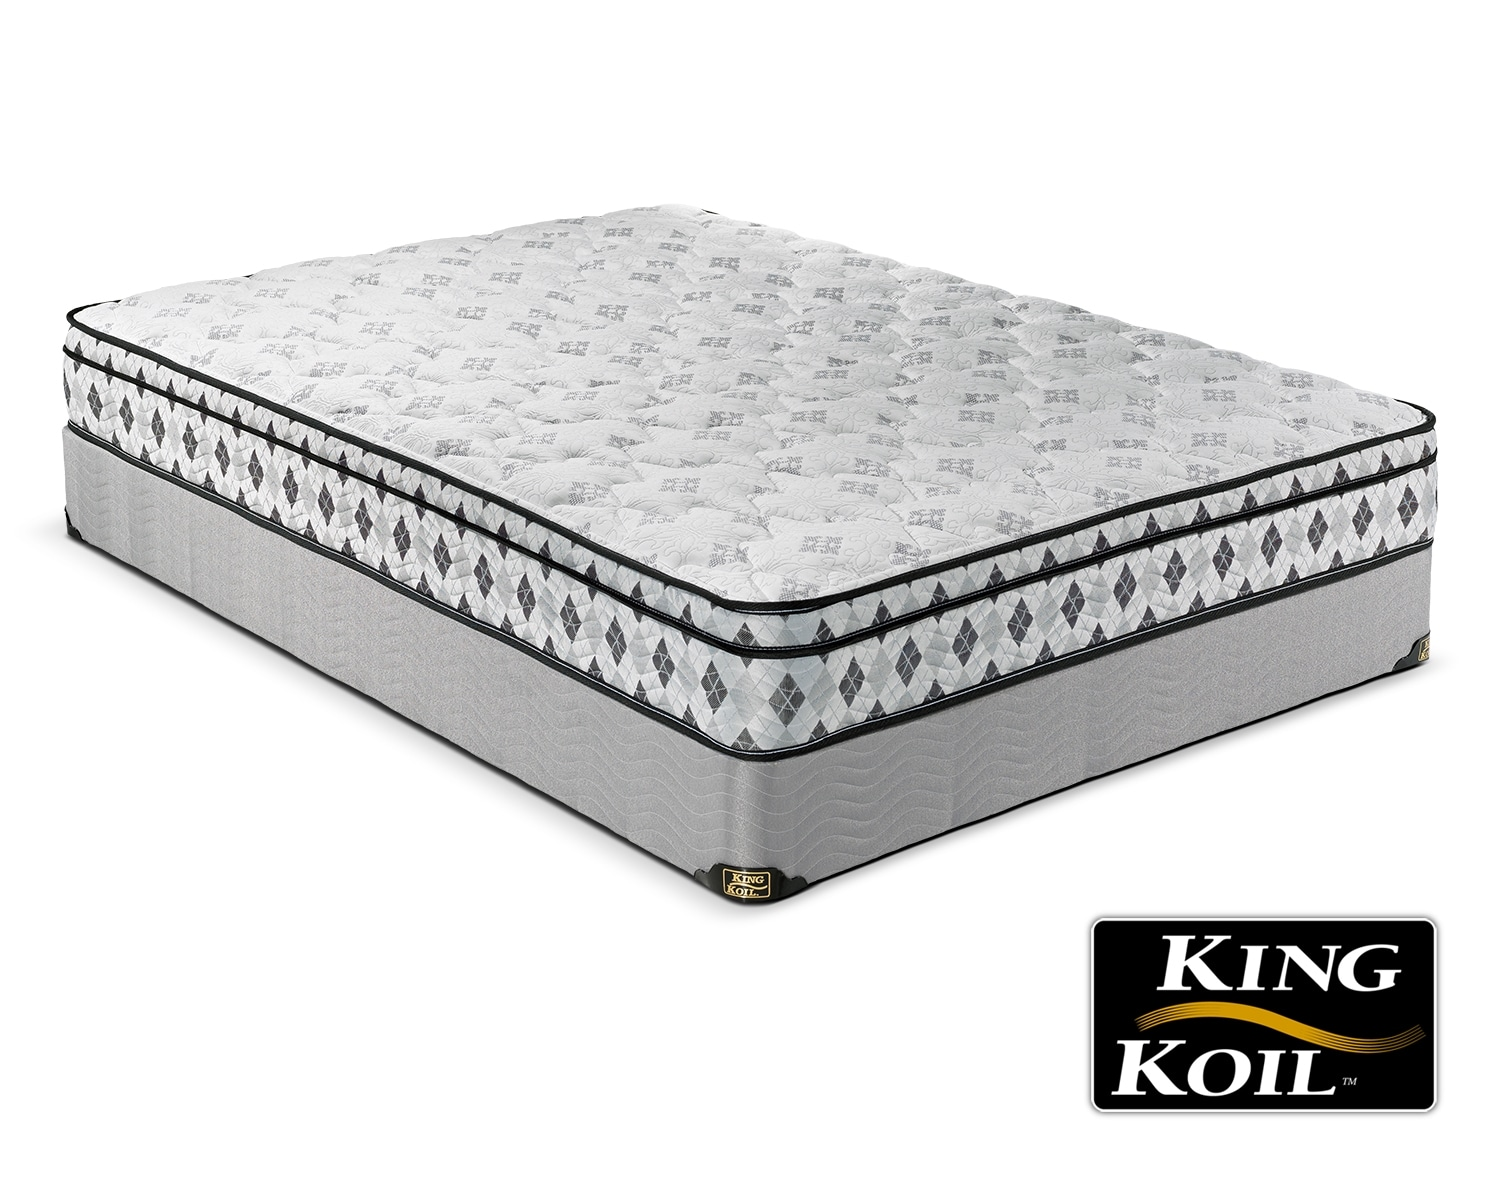 King Koil Heavenly Nights Mattress Collection